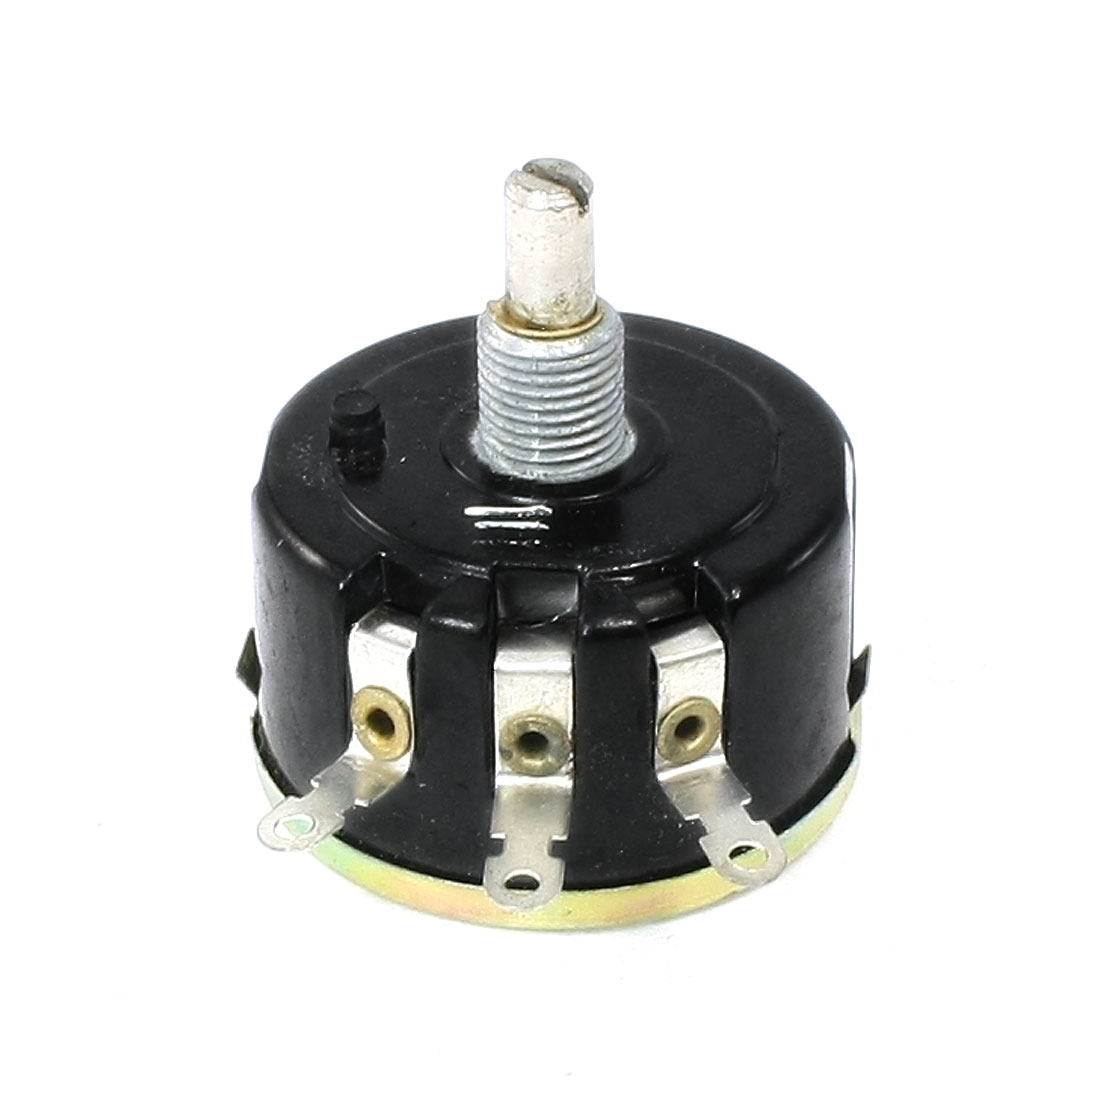 4.7K ohm 6mm Round Shaft Carbon Composition Rotary Taper Potentiometer